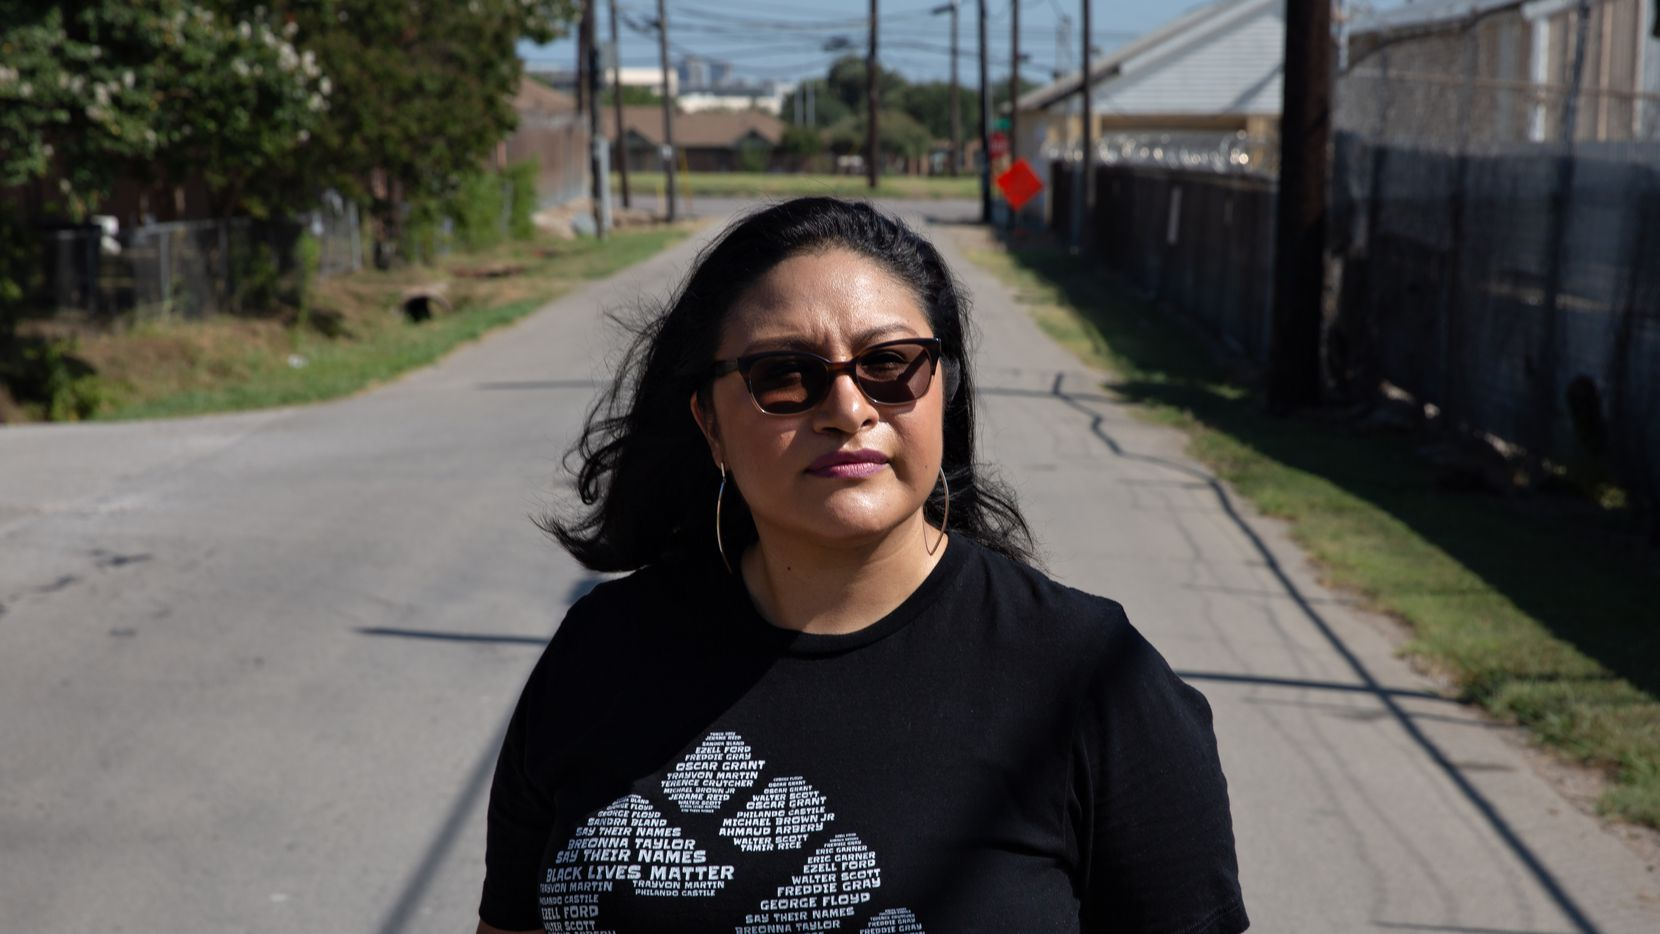 """Janie Cisneros stands for a portrait between her neighborhood and the GAF shingle manufacturing plant in Dallas on July 11, 2021. Janie is emerging as a leader in the fight against the air pollution the facility generates, which she believes affects lives and health of those living nearby.  """"It's happening right in front of me. How could I not say something?"""""""